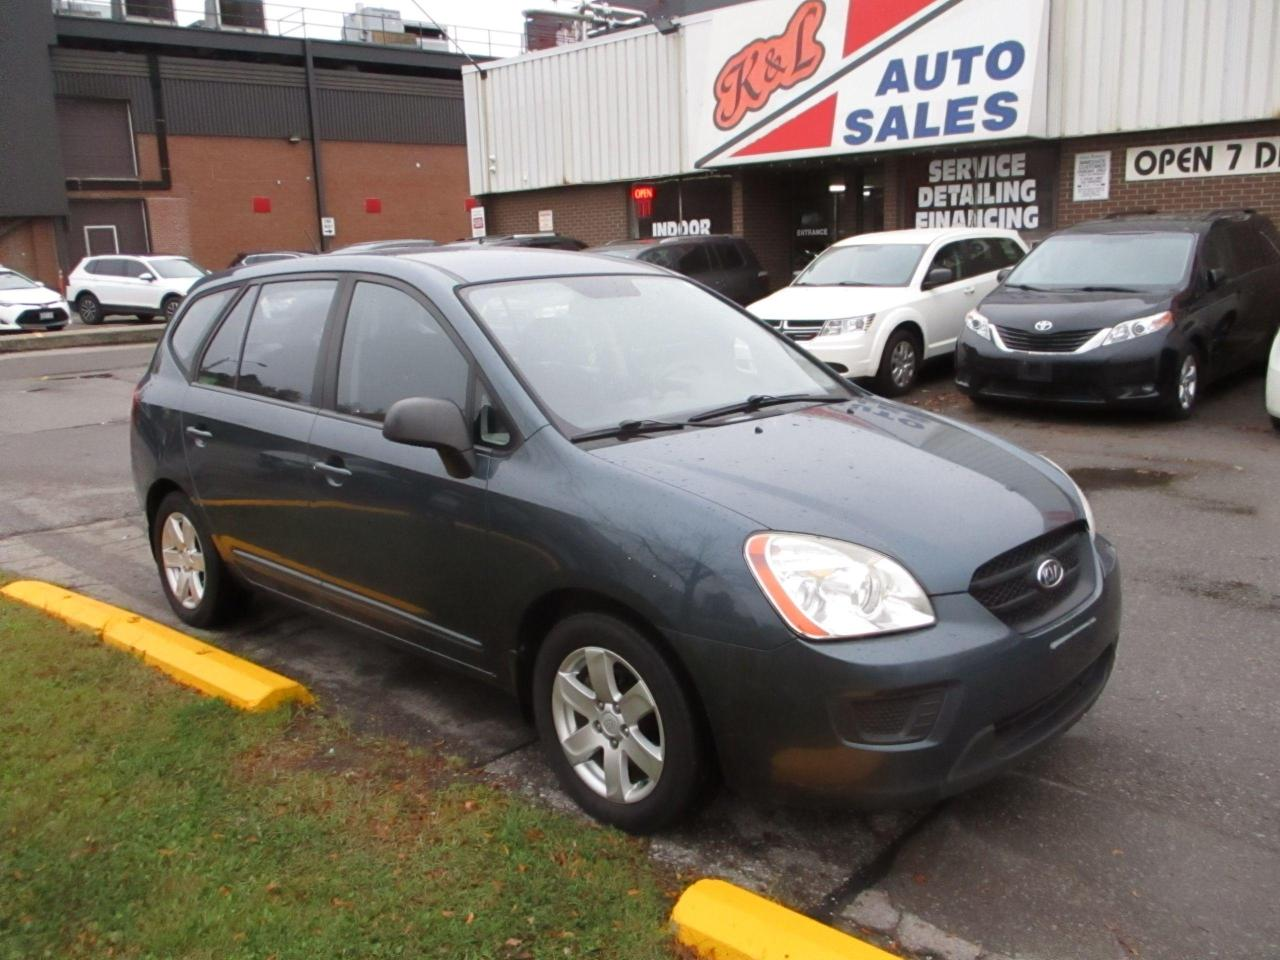 used 2009 kia rondo lx w ac alloy rims auto safety included for sale in toronto ontario carpages ca used 2009 kia rondo lx w ac alloy